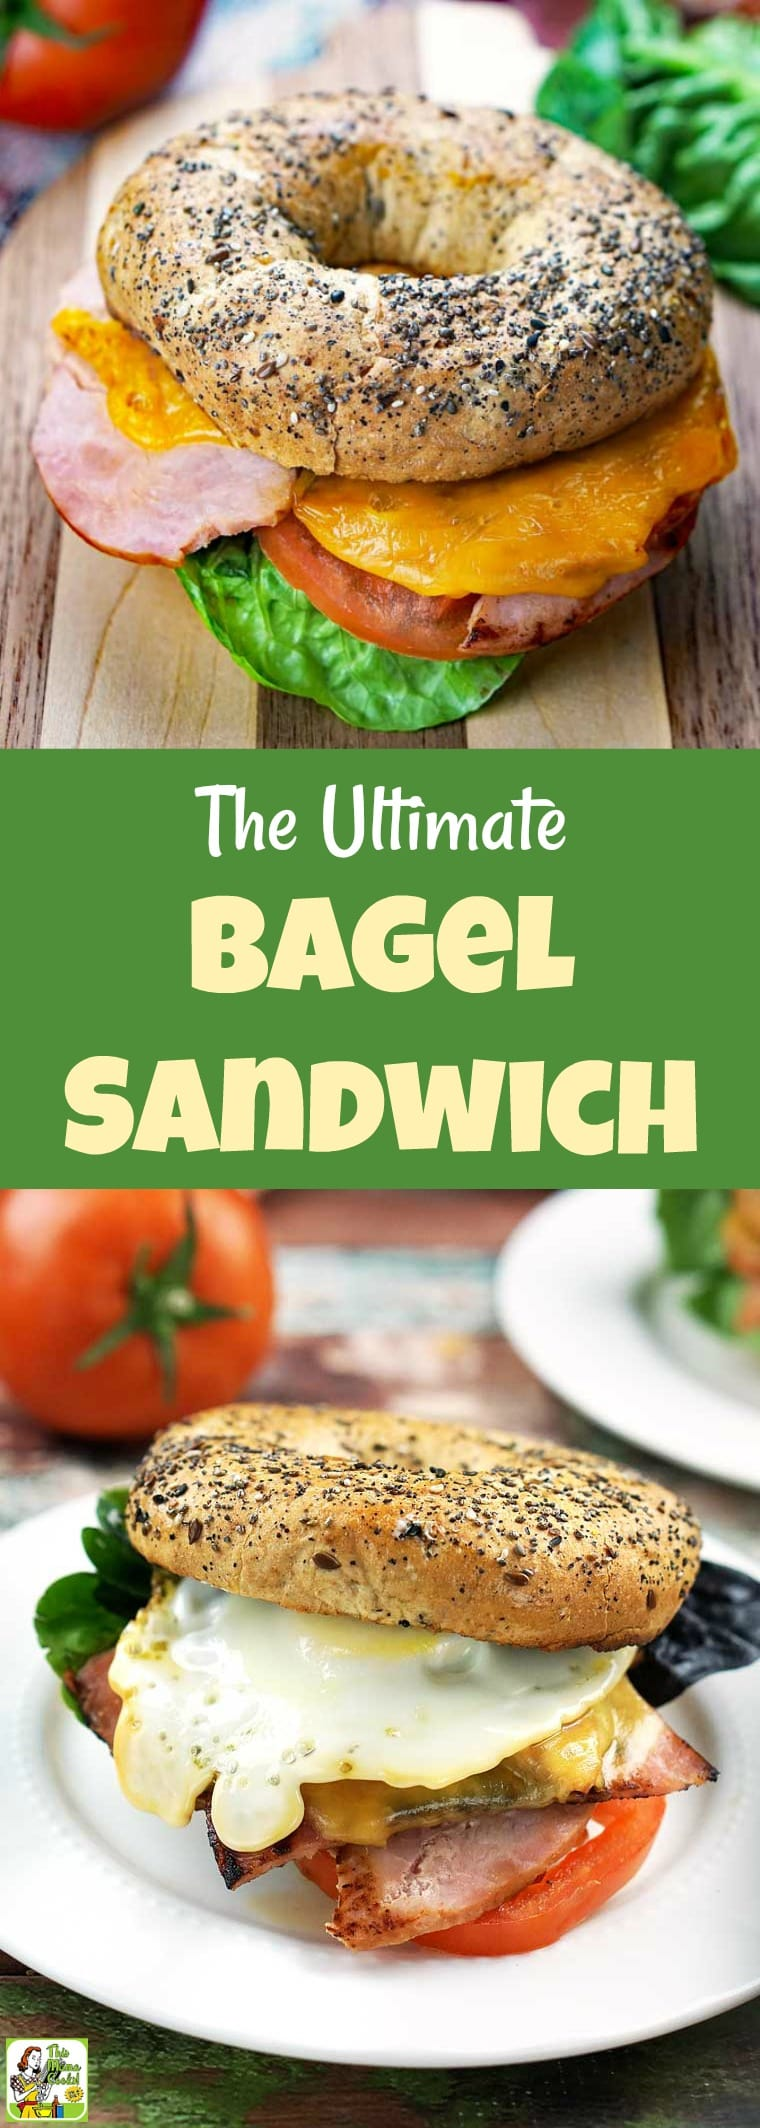 The Ultimate Bagel Sandwich